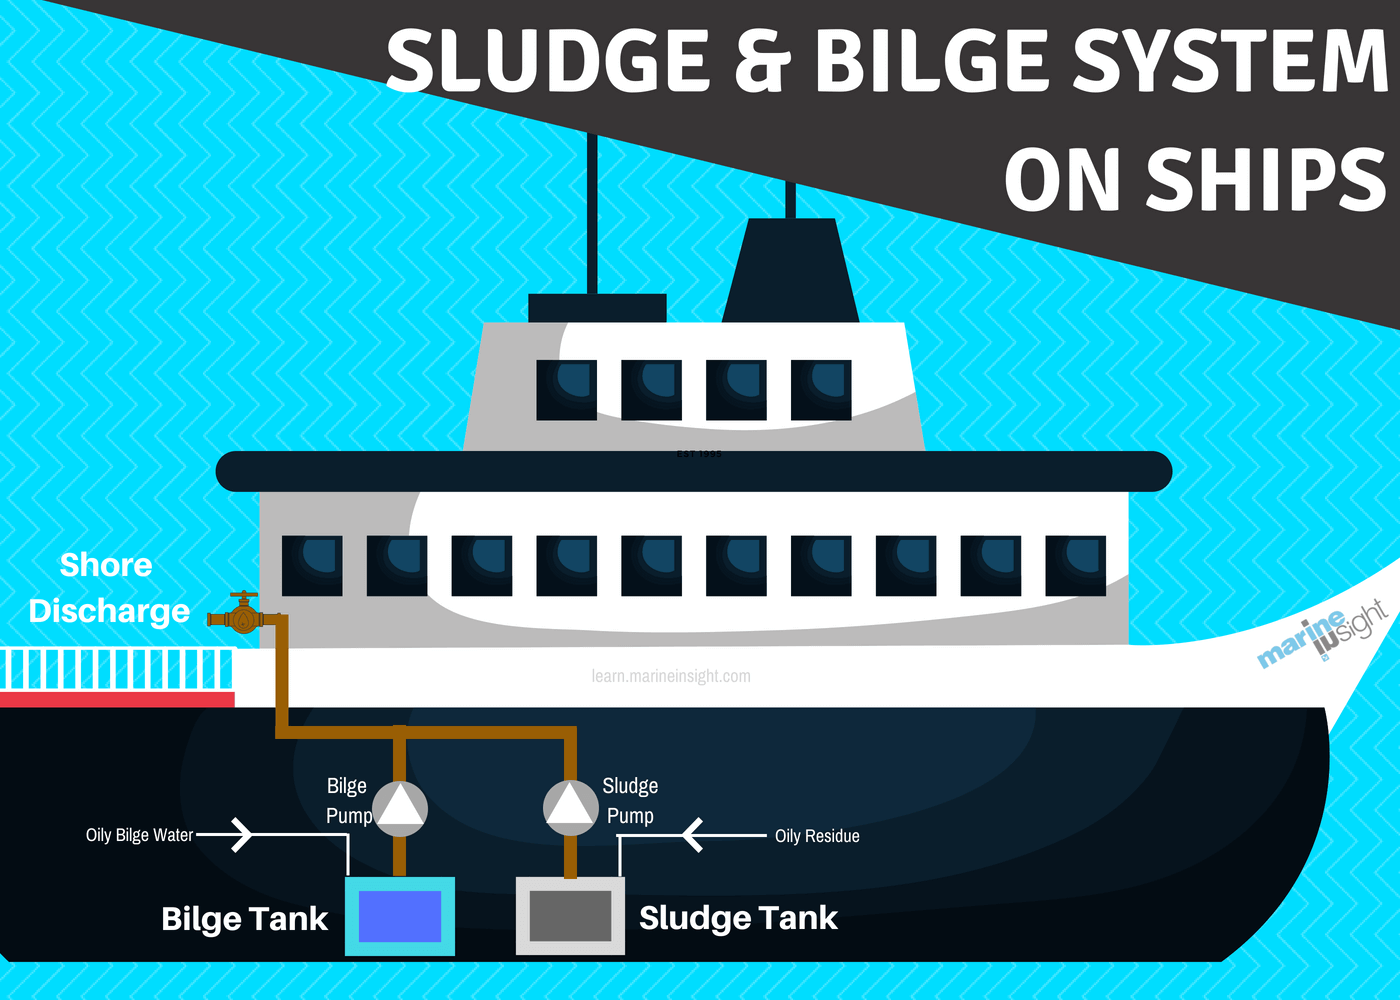 An Overview Of Sludge And Bilge Management Onboard Ships